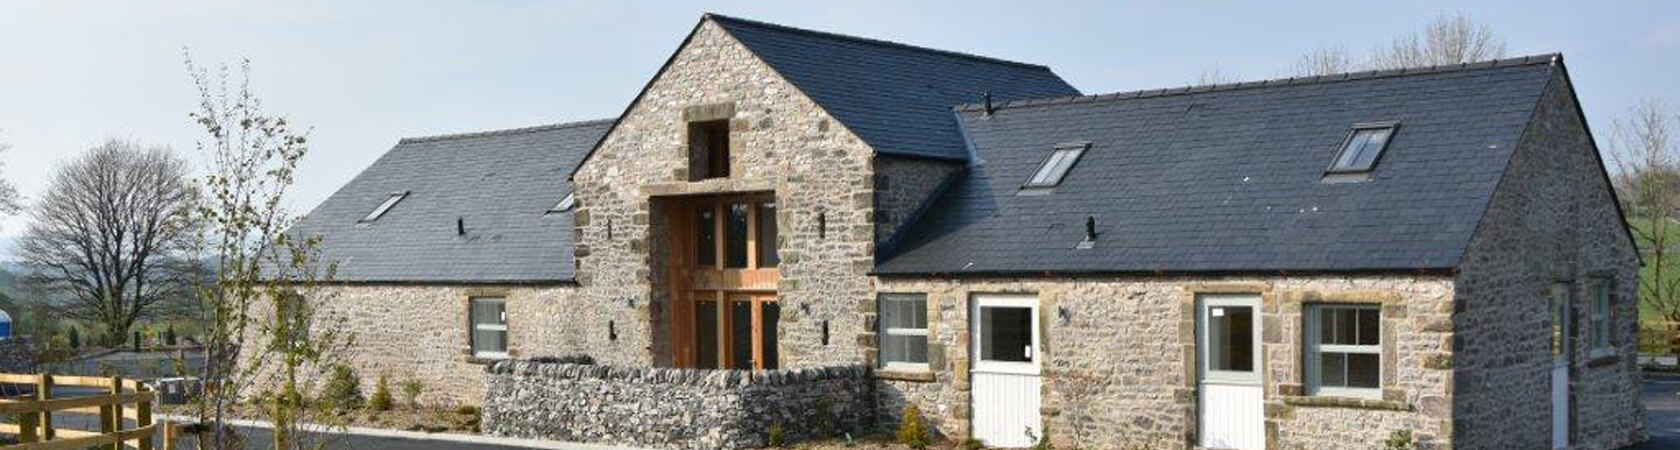 farditch farm holiday cottages